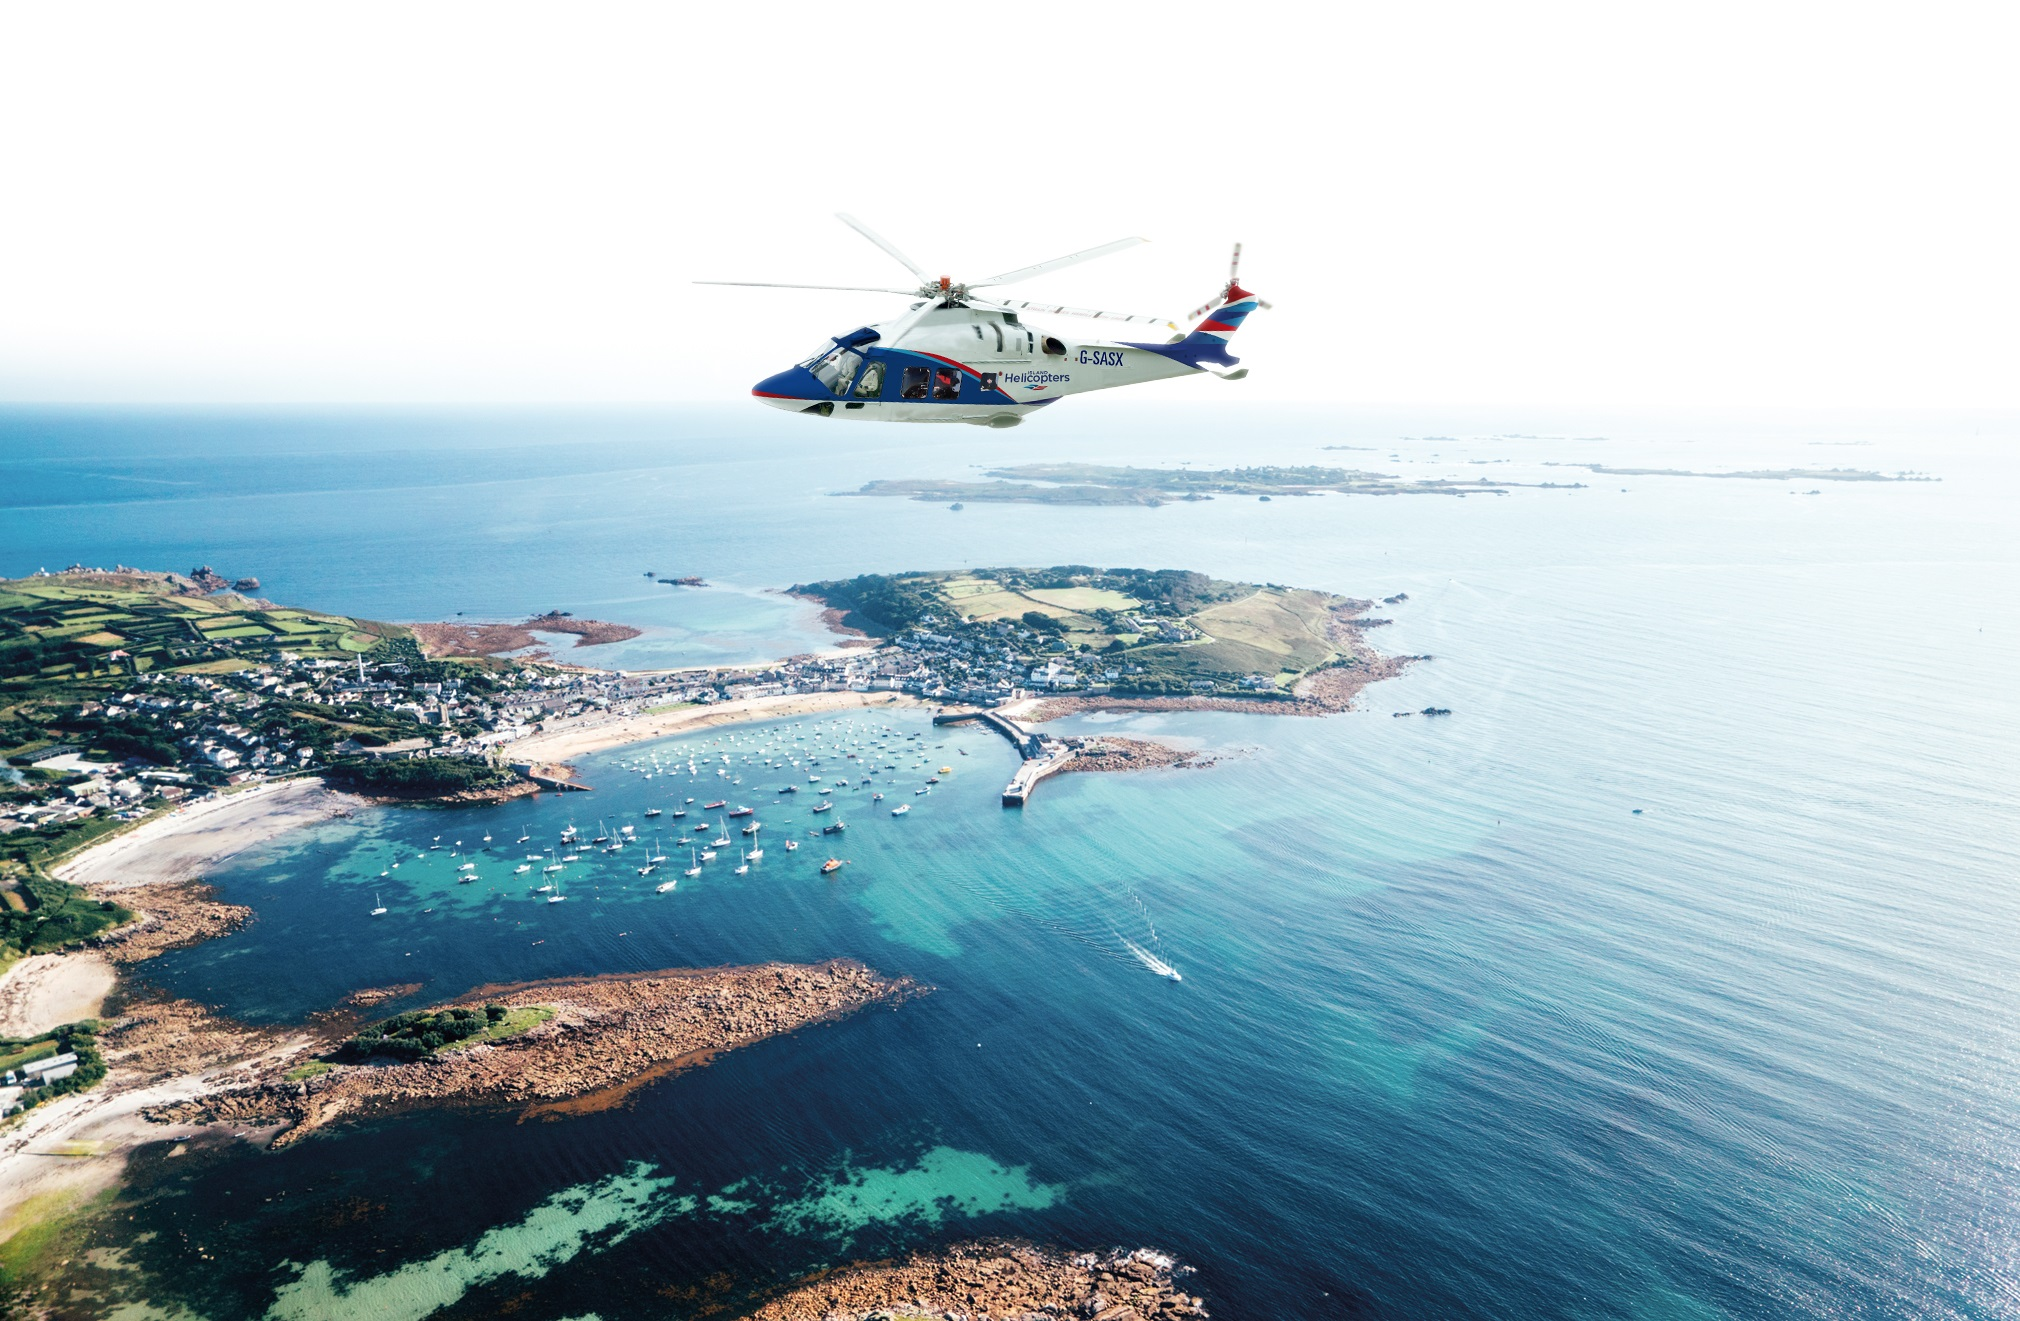 A brand new 10-seater AW169 aircraft will be fly from Land's End Airport to the Isles of Scilly up to eight times a day, six days a week when the service launches on the 21st May.